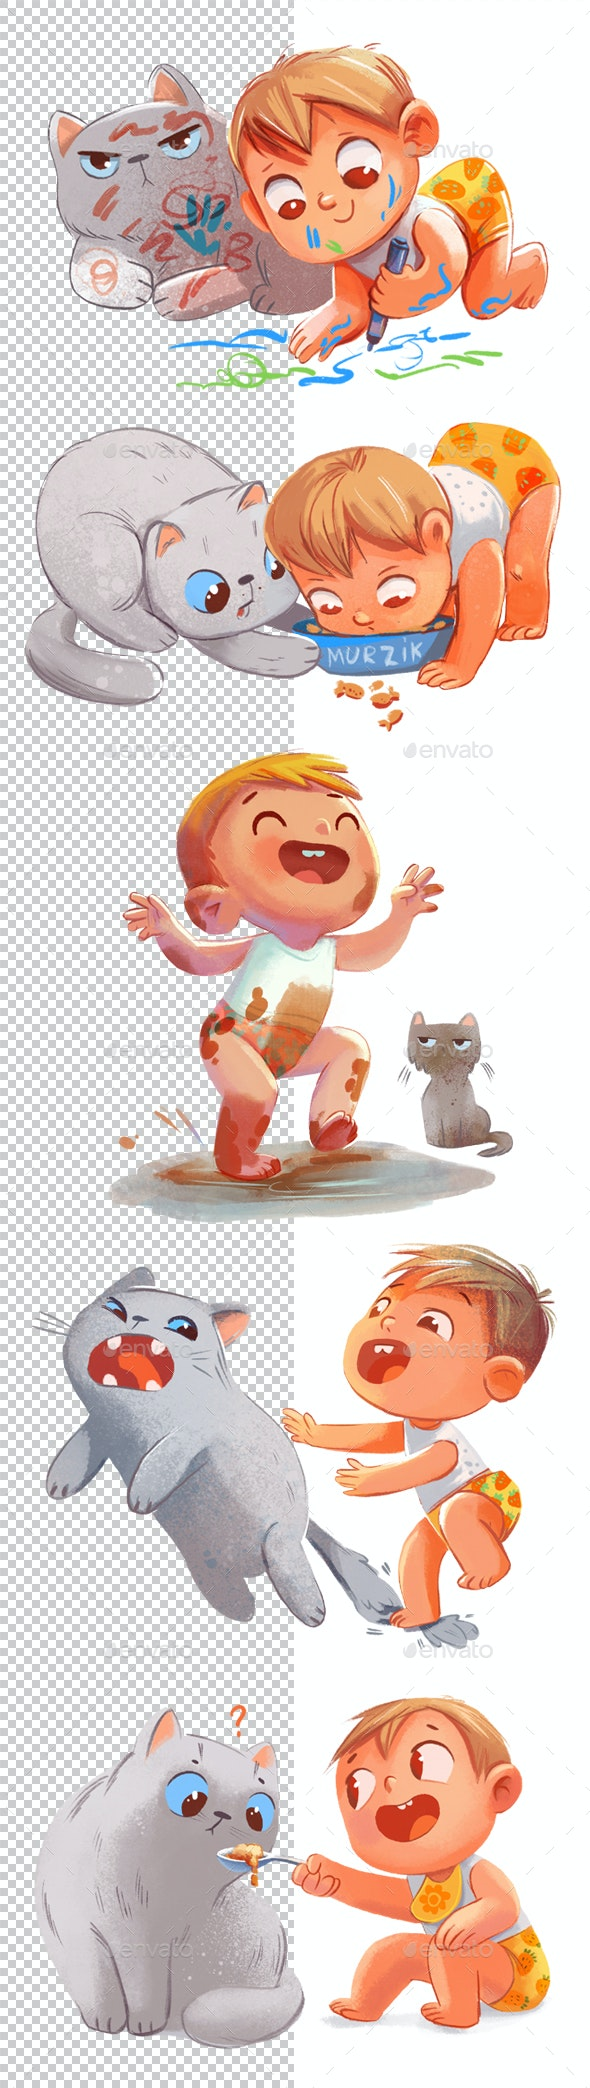 Toddler and Cat - Characters Illustrations